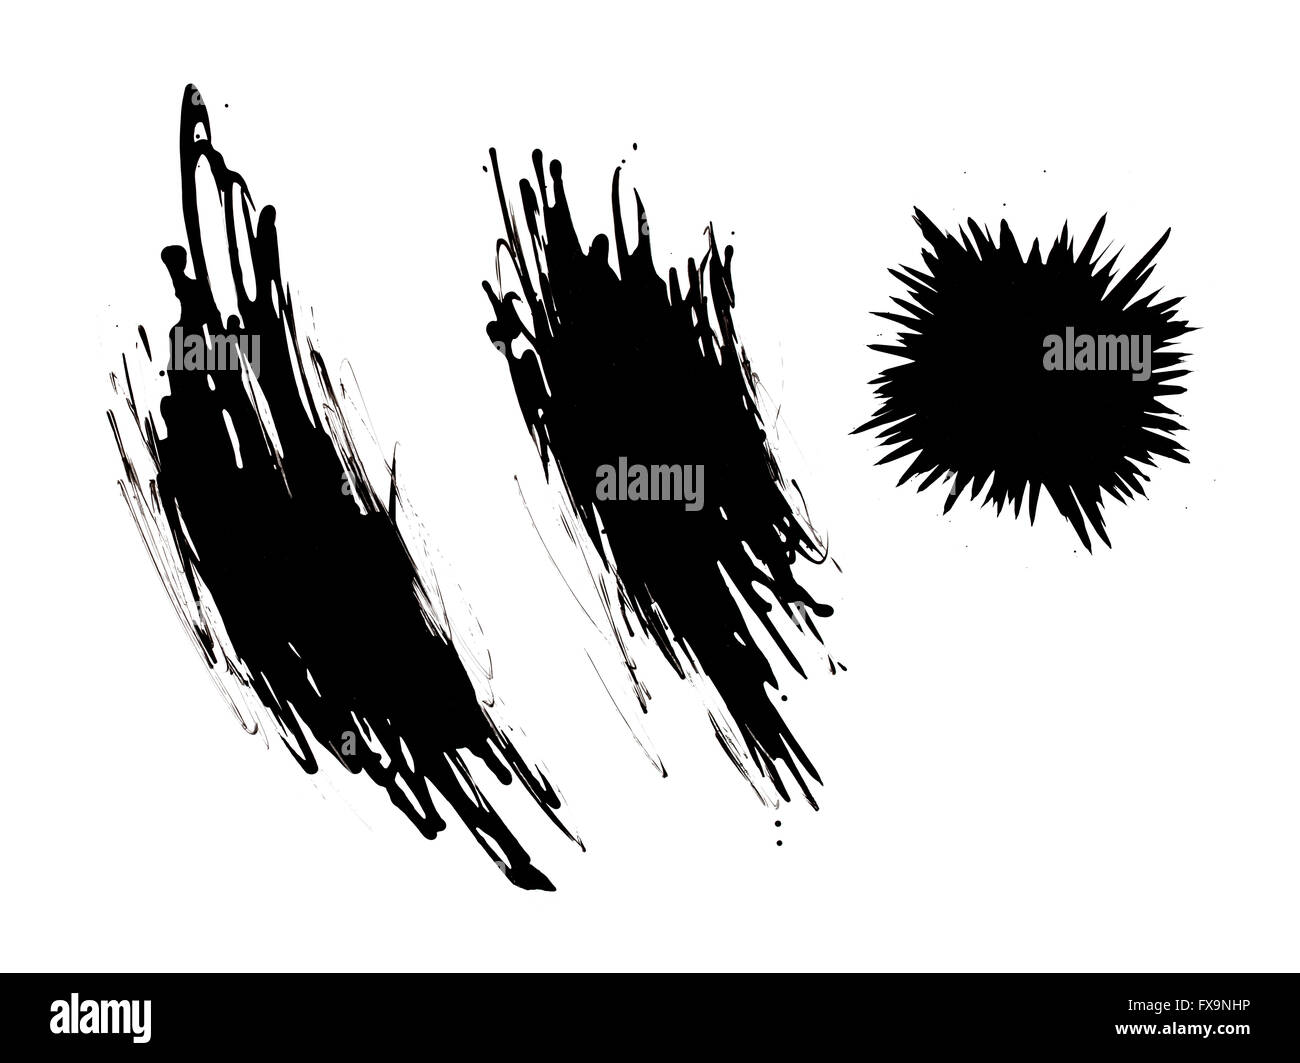 Black Scribbles and Splat Drip Isolated on White Background. - Stock Image